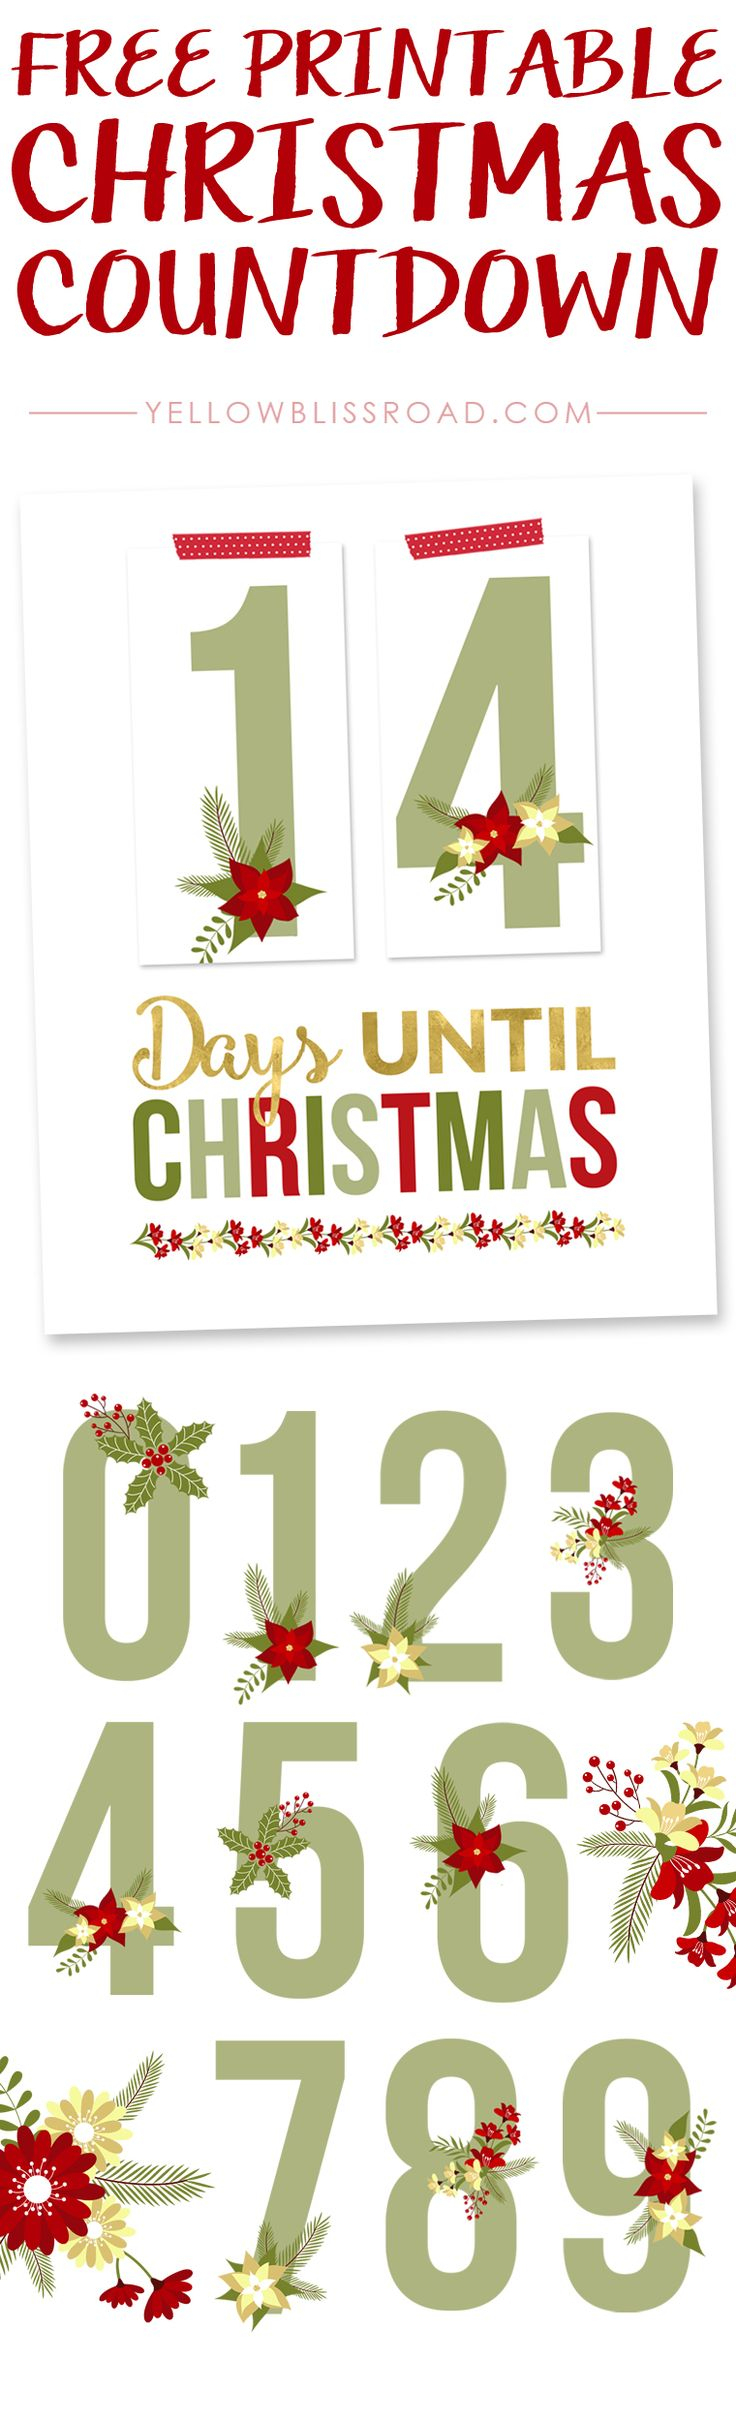 Free Printable Christmas Countdown | Bake Craft Sew Decorate - Free Printable Christmas Photo Collage